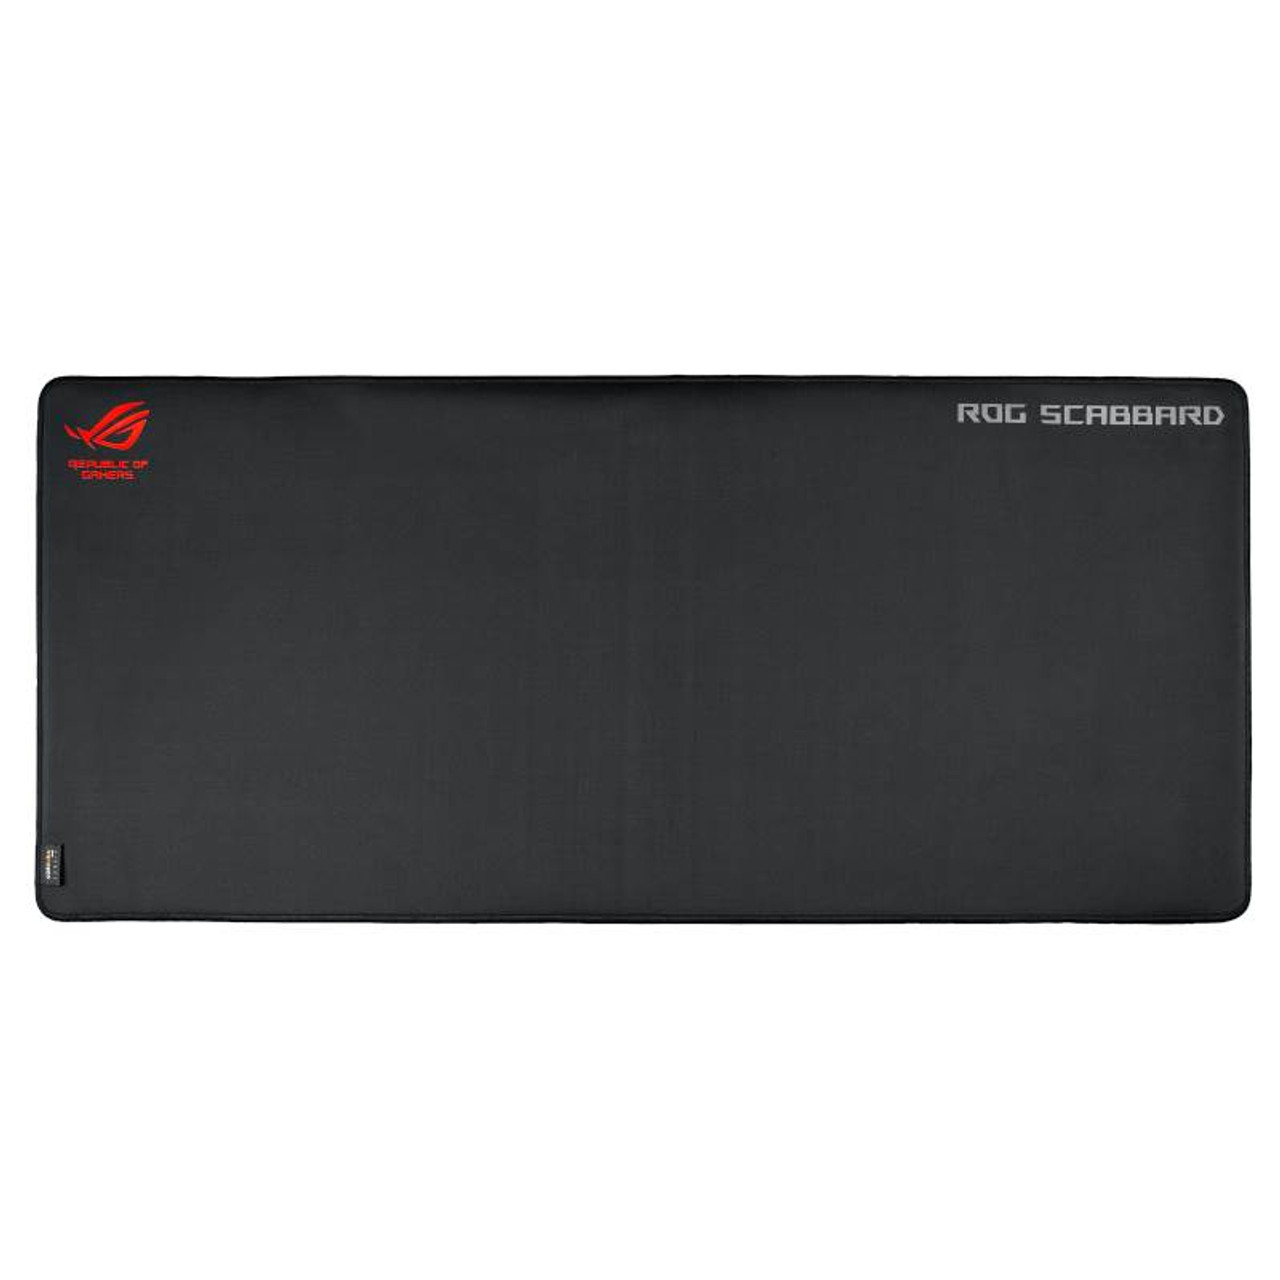 Image for Asus ROG Scabbard Extended Gaming Mouse Pad CX Computer Superstore